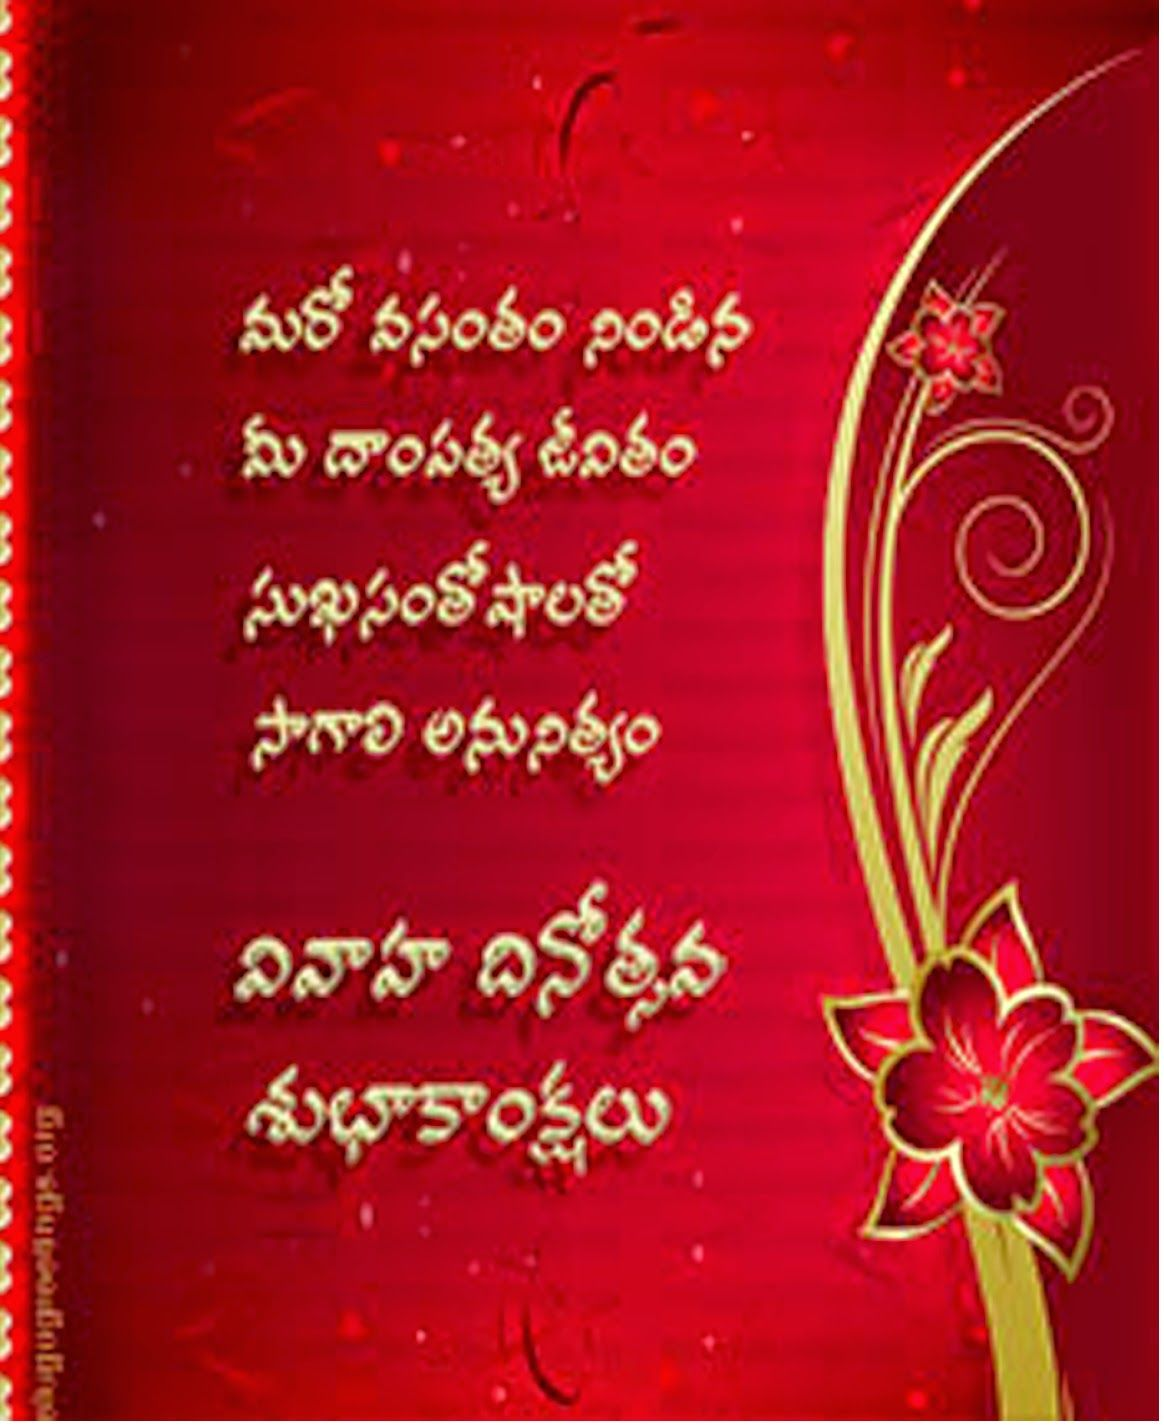 Marriage Day Greetings In Telugu Free Download, Telugu Pelli Roju ...